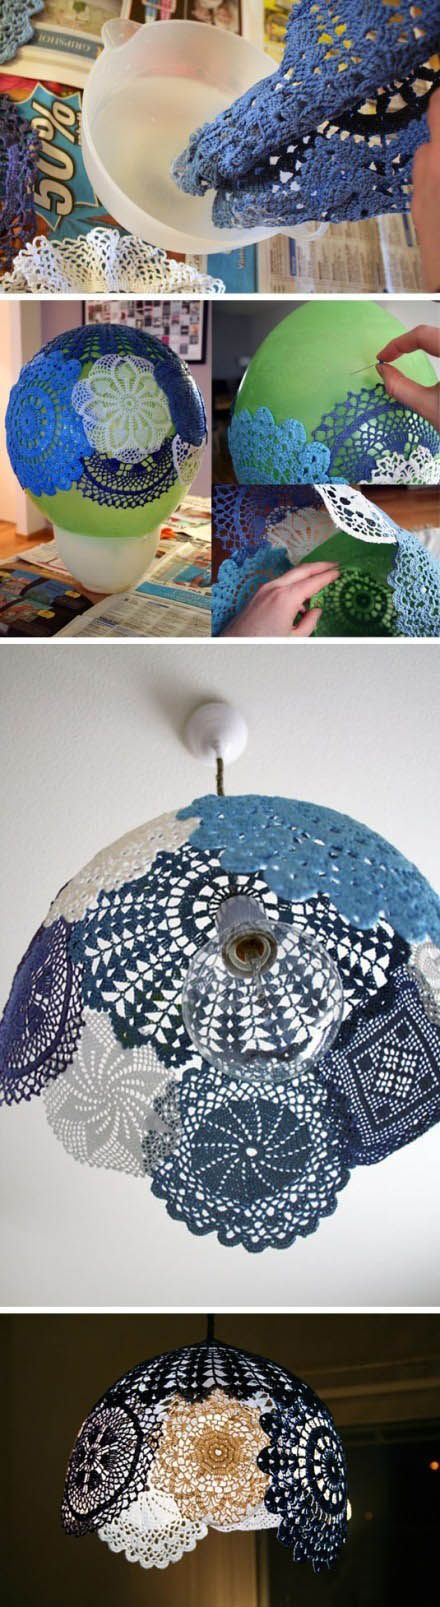 Very Beautiful Chandelier | Click to see More DIY & Crafts Tutorials on Our Site.